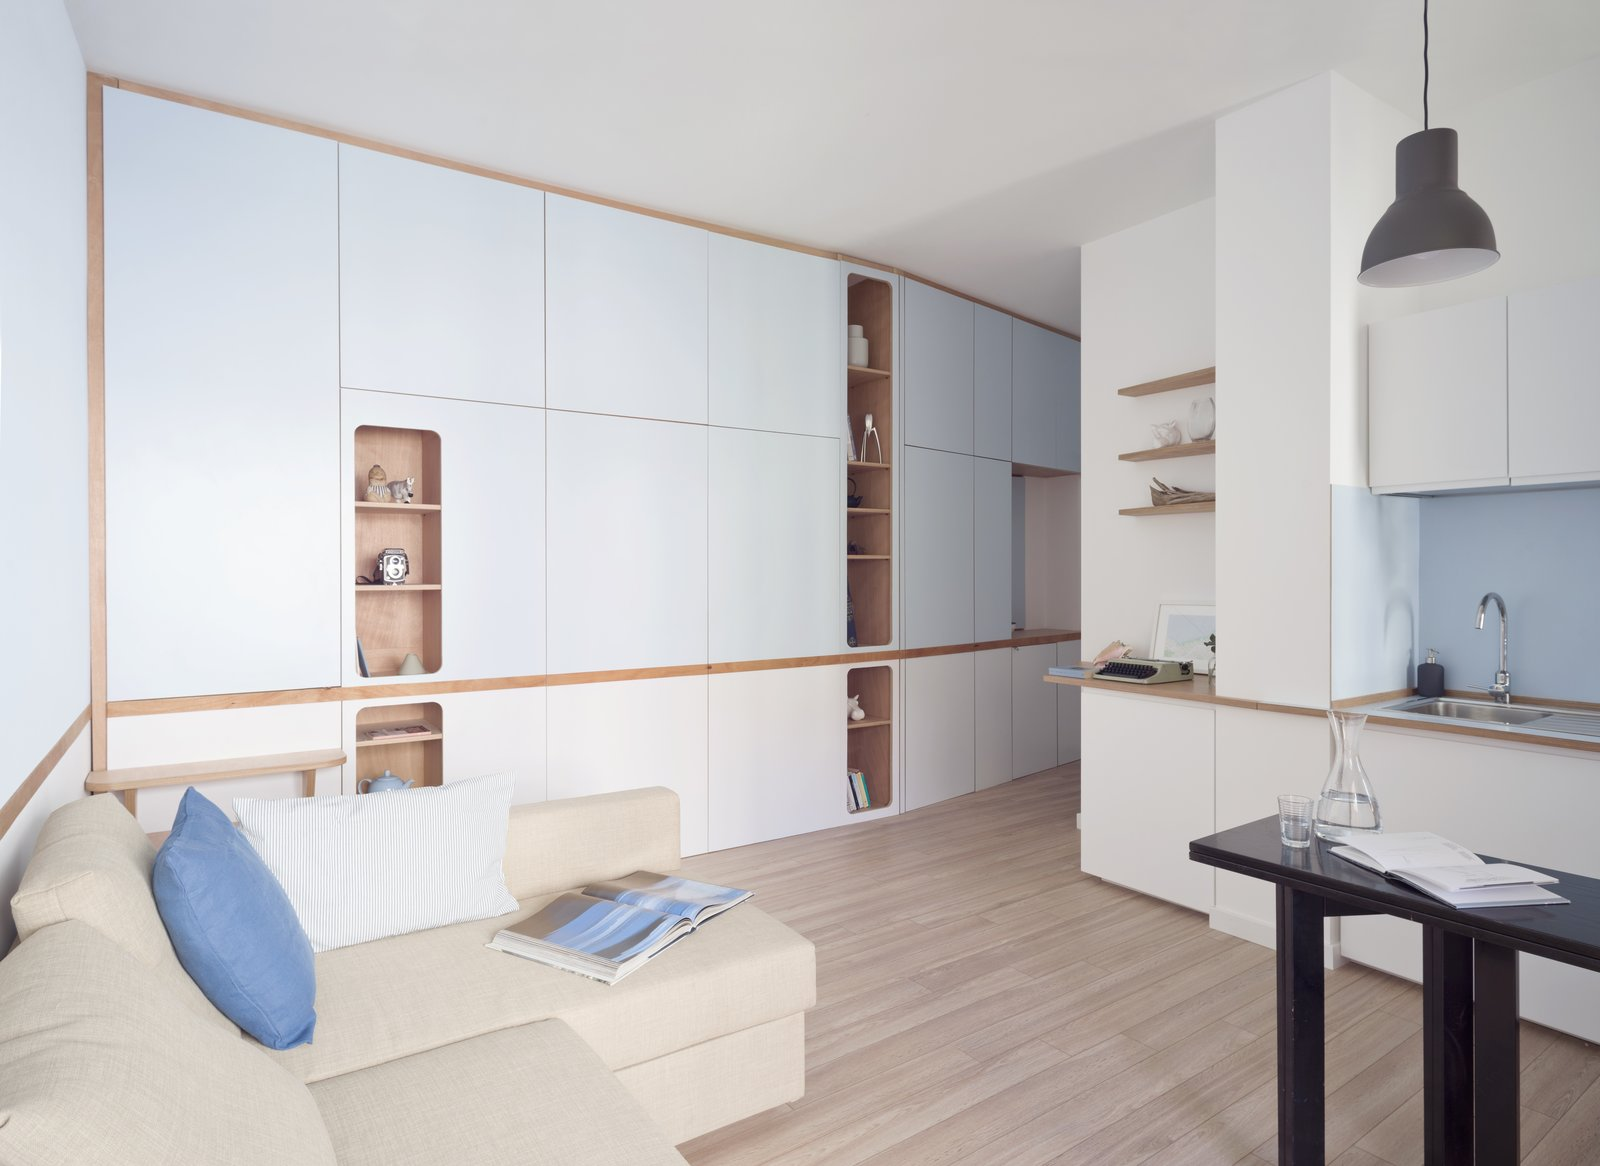 transforming apartment concealed sleeping areas